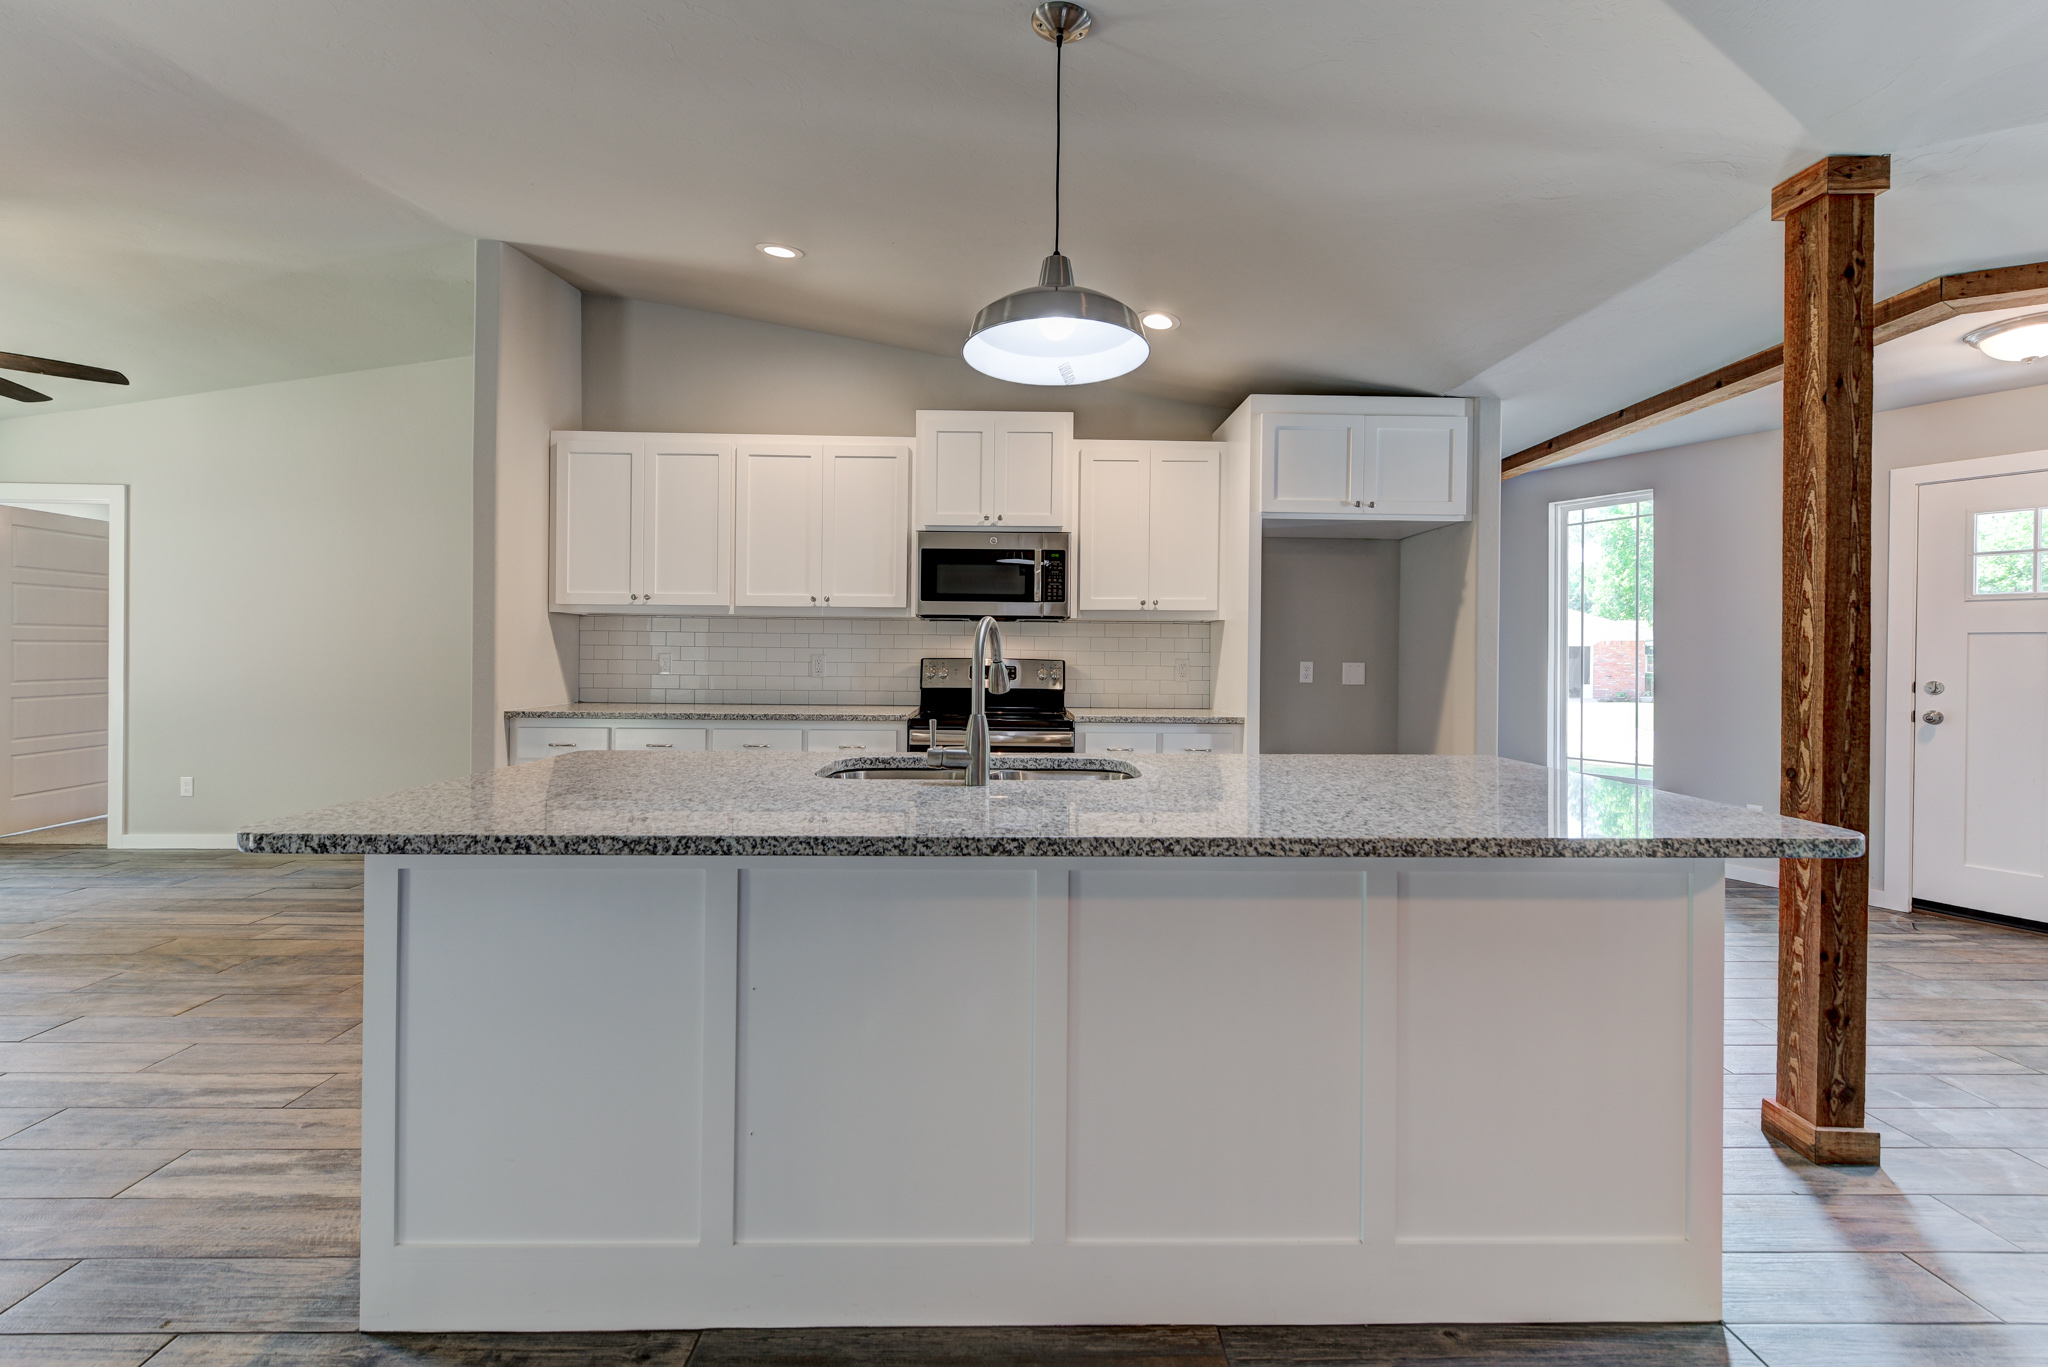 New kitchen with large island